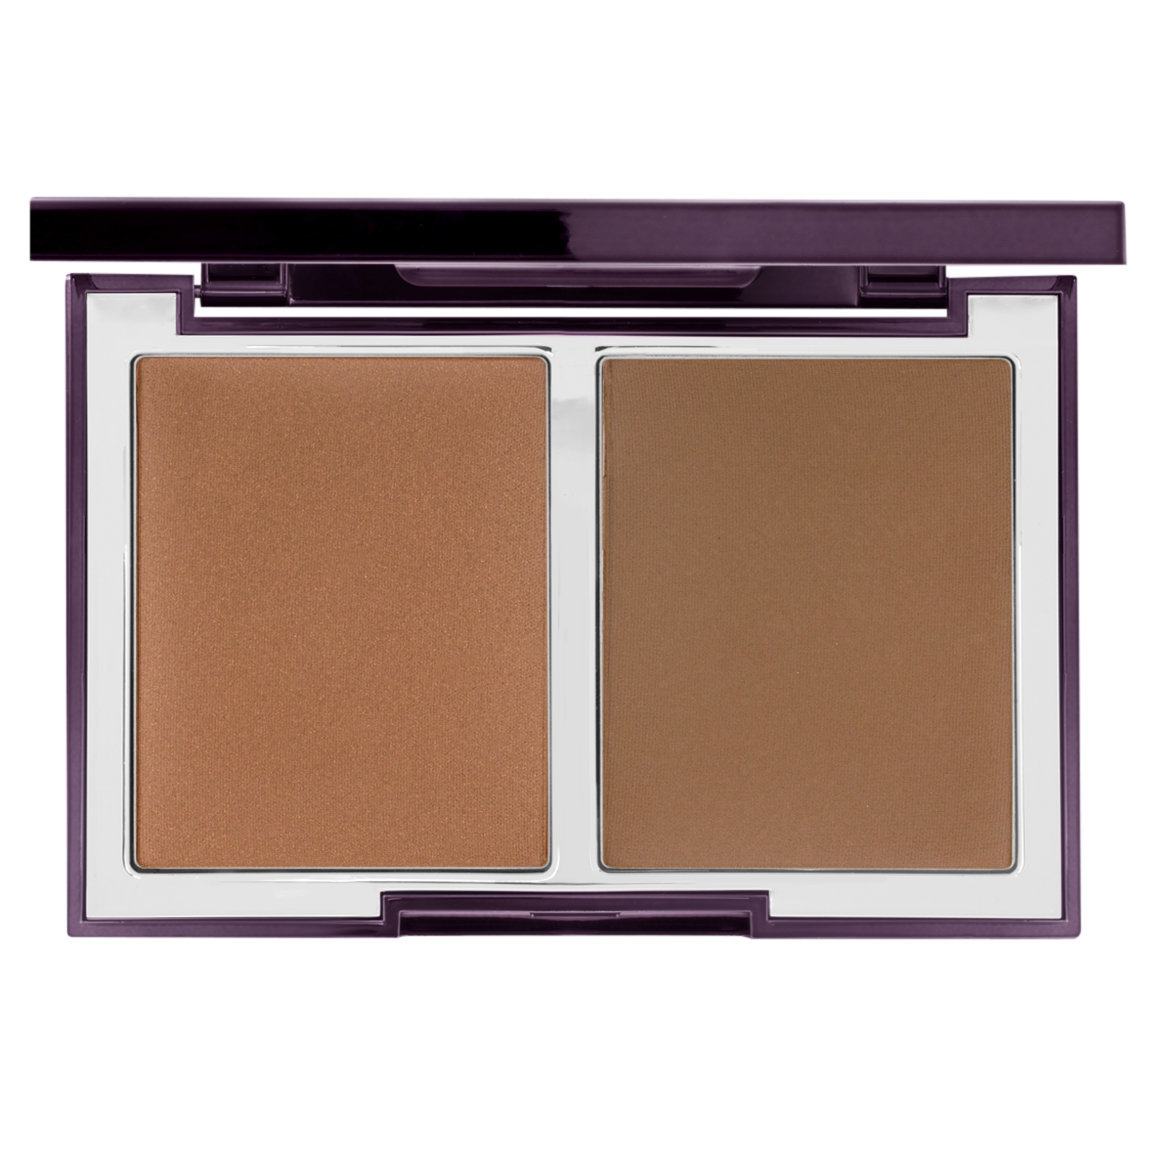 Wayne Goss The Radiance Boosting Face Palette Satin Bronze alternative view 1 - product swatch.